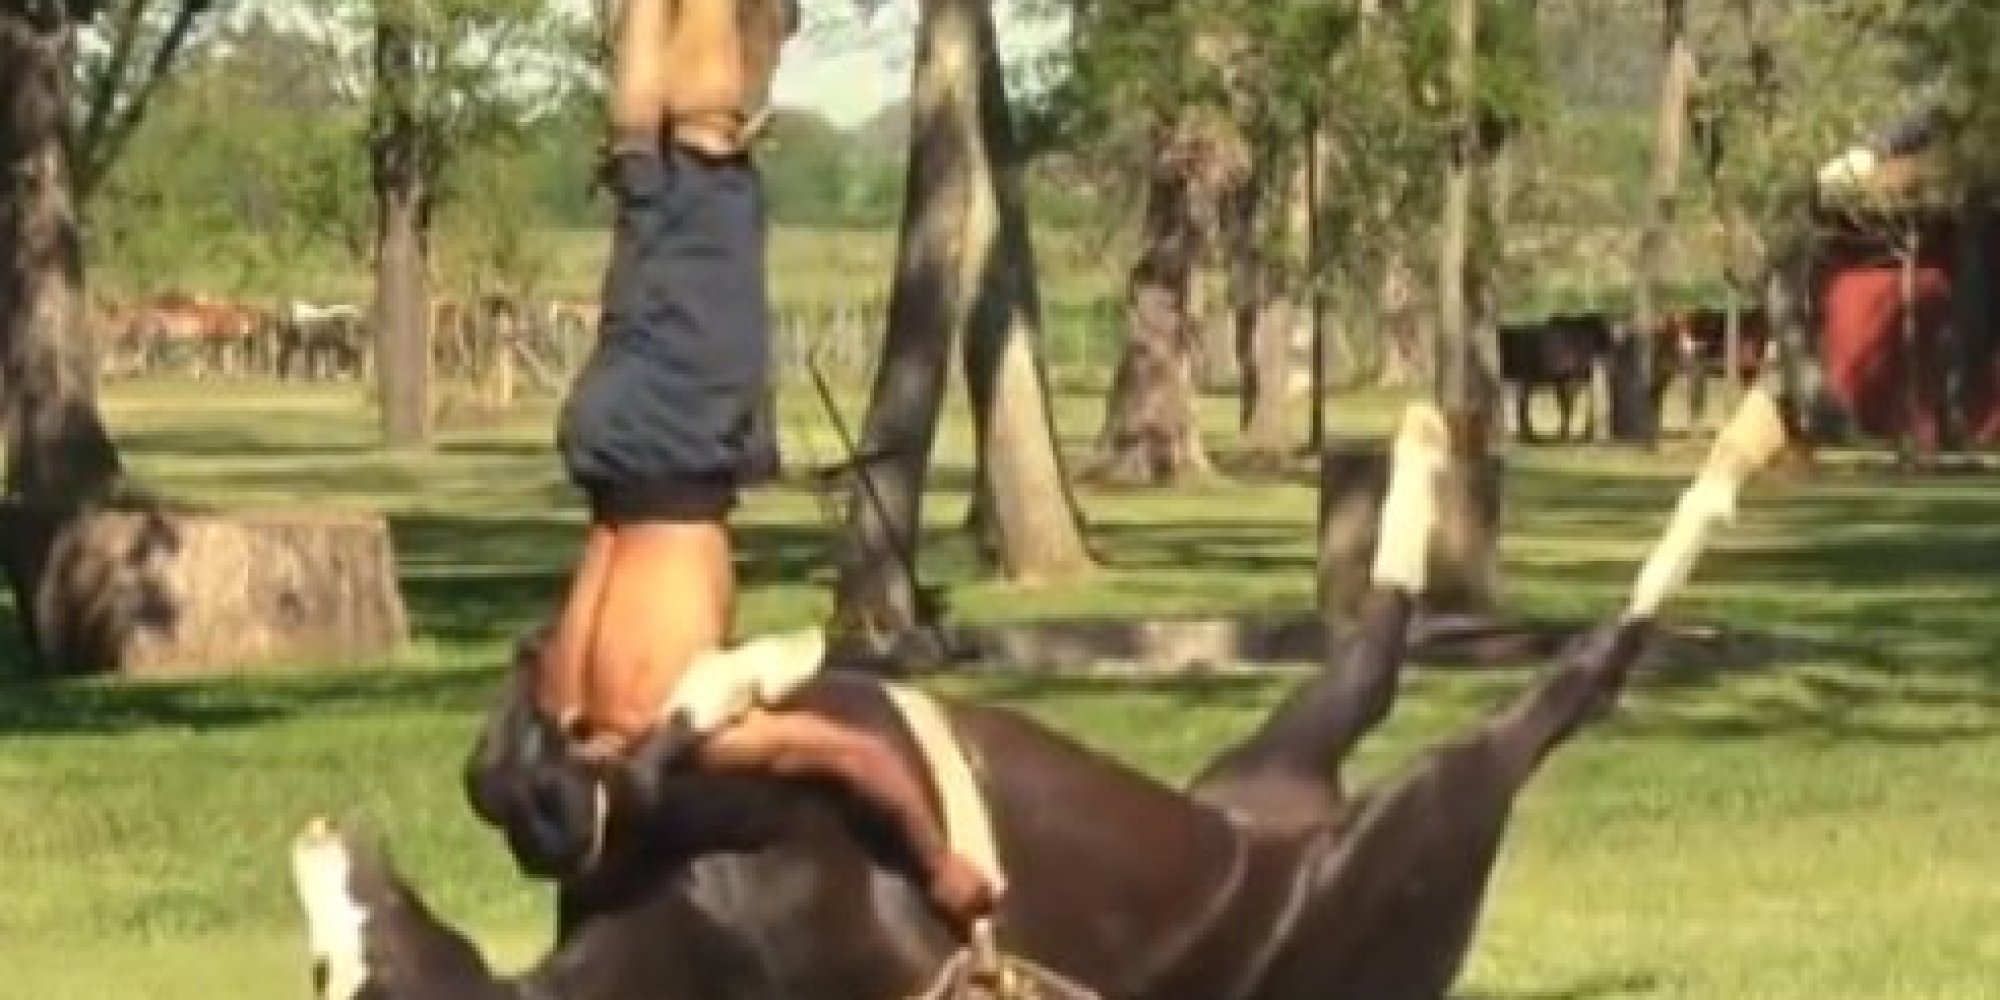 Only Horse Yoga Could Look This Peacefully Strange